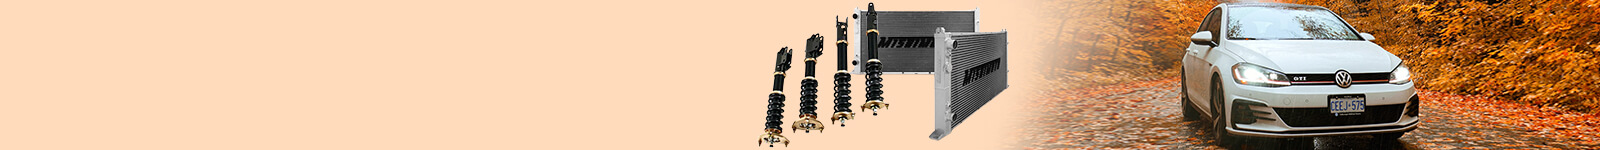 Coilovers Banner